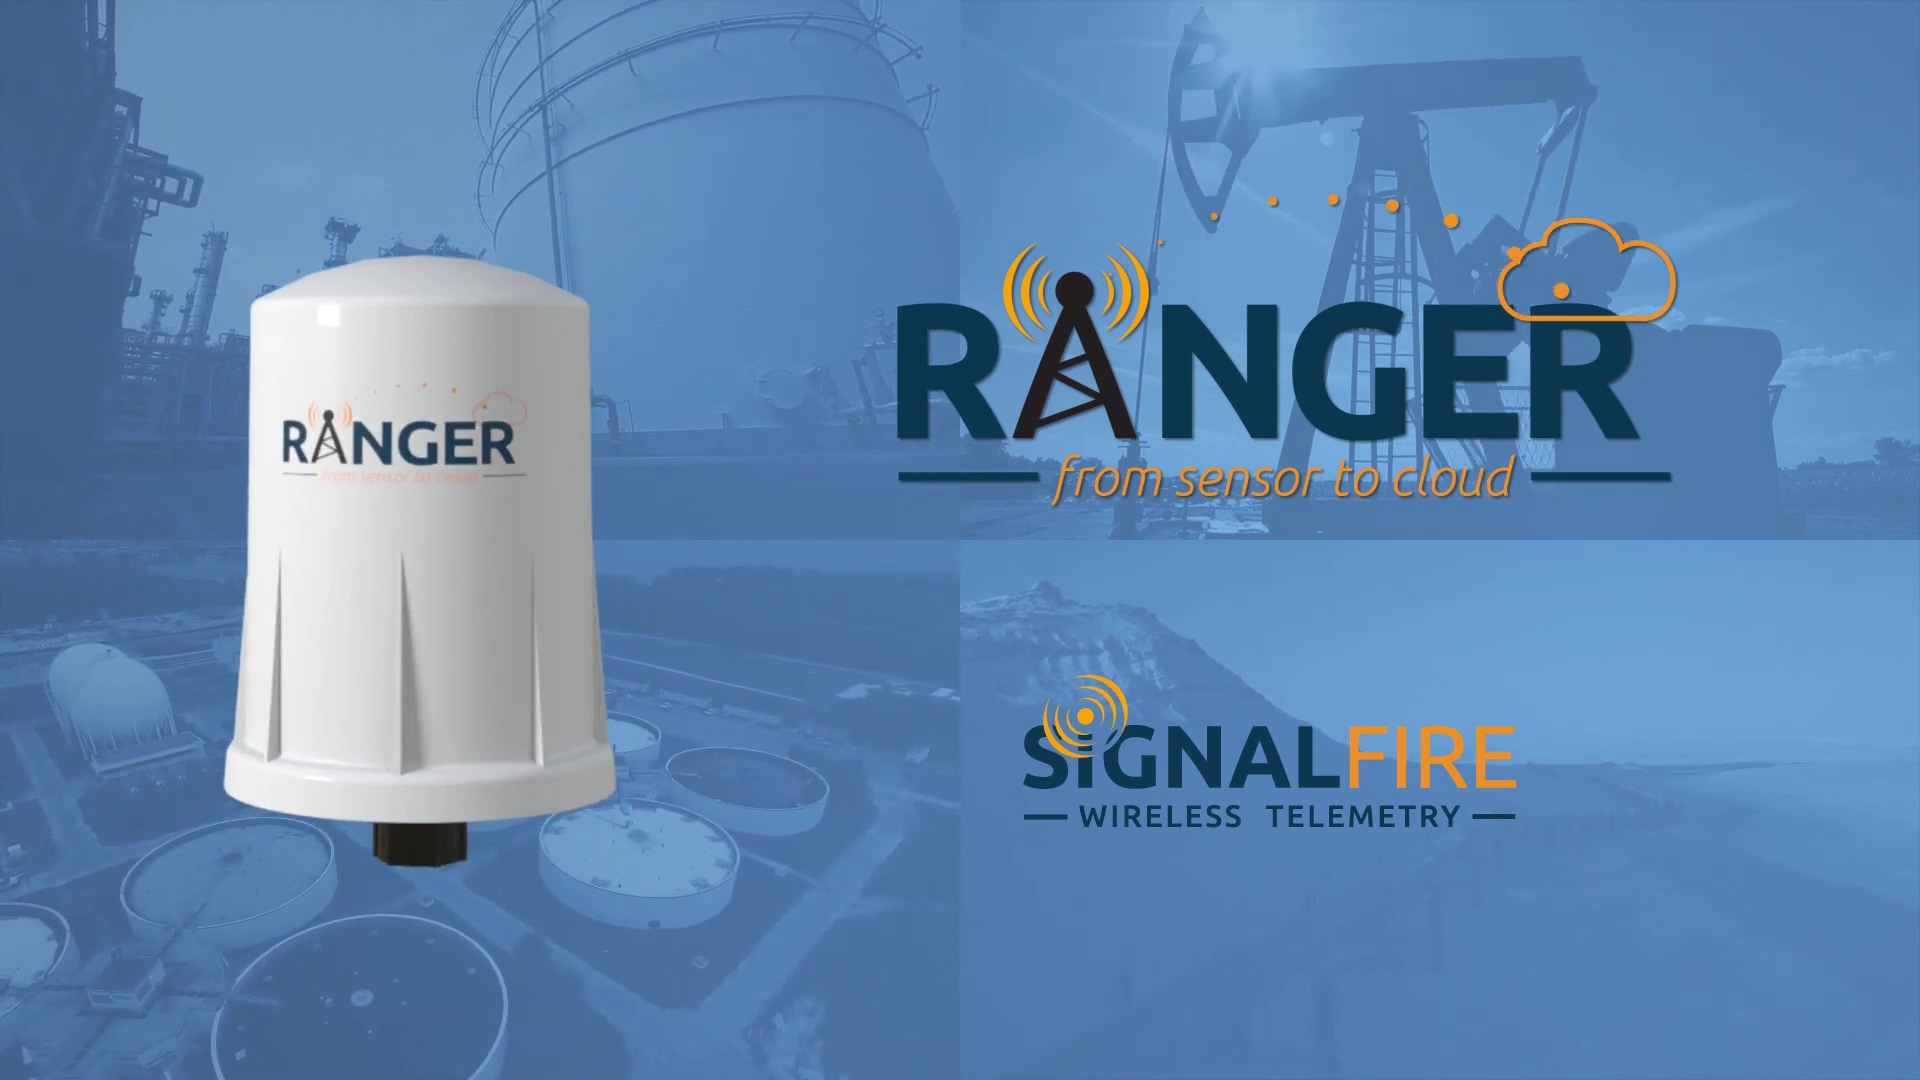 SIgnalFire Ranger - From Sensor to Cloud